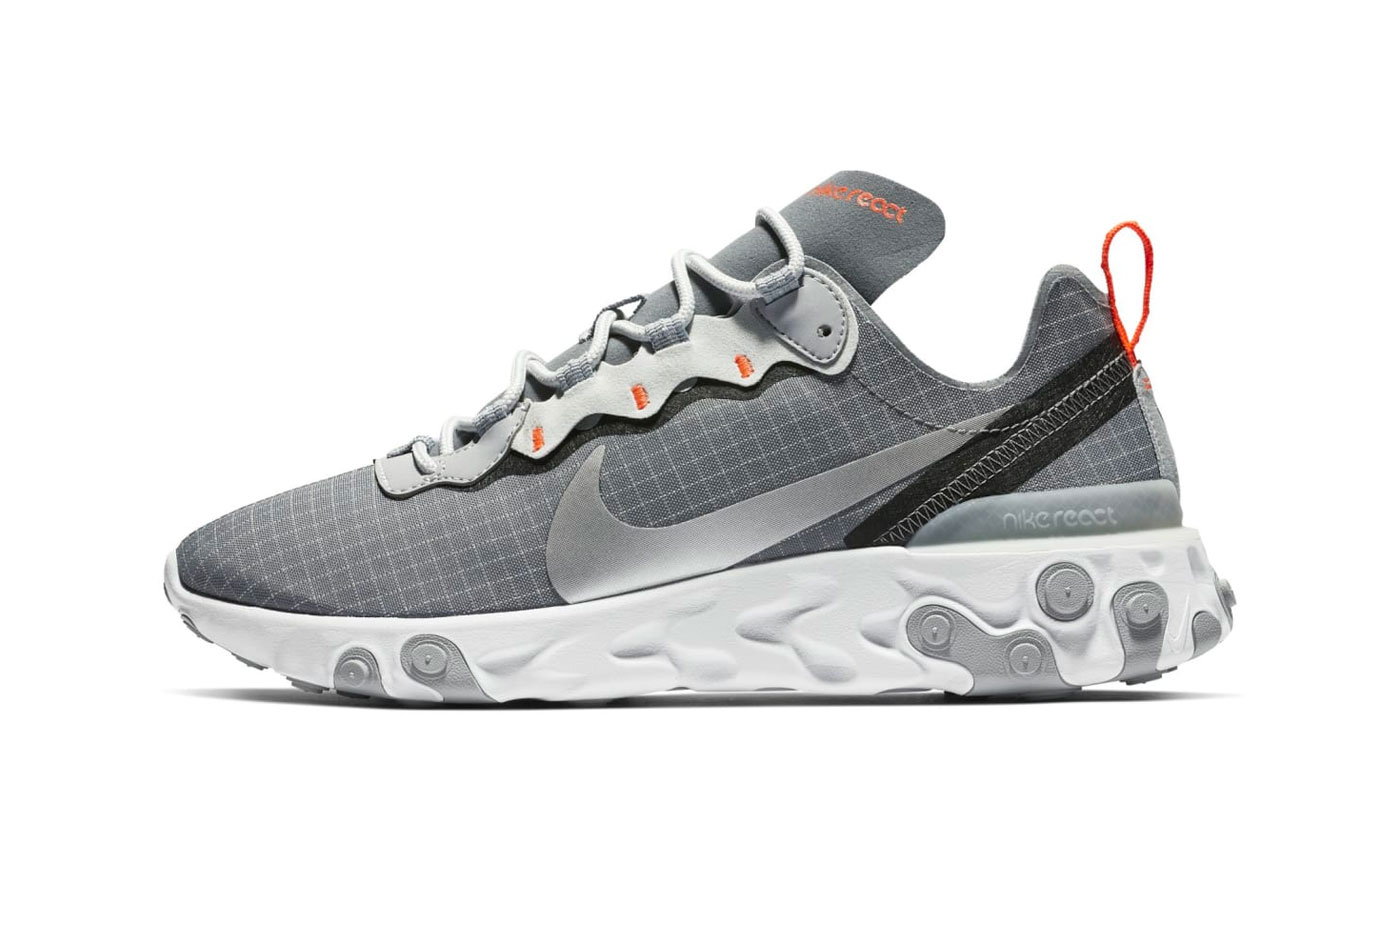 Nike React Element 55 Grey Orange Grid White Release Info Date